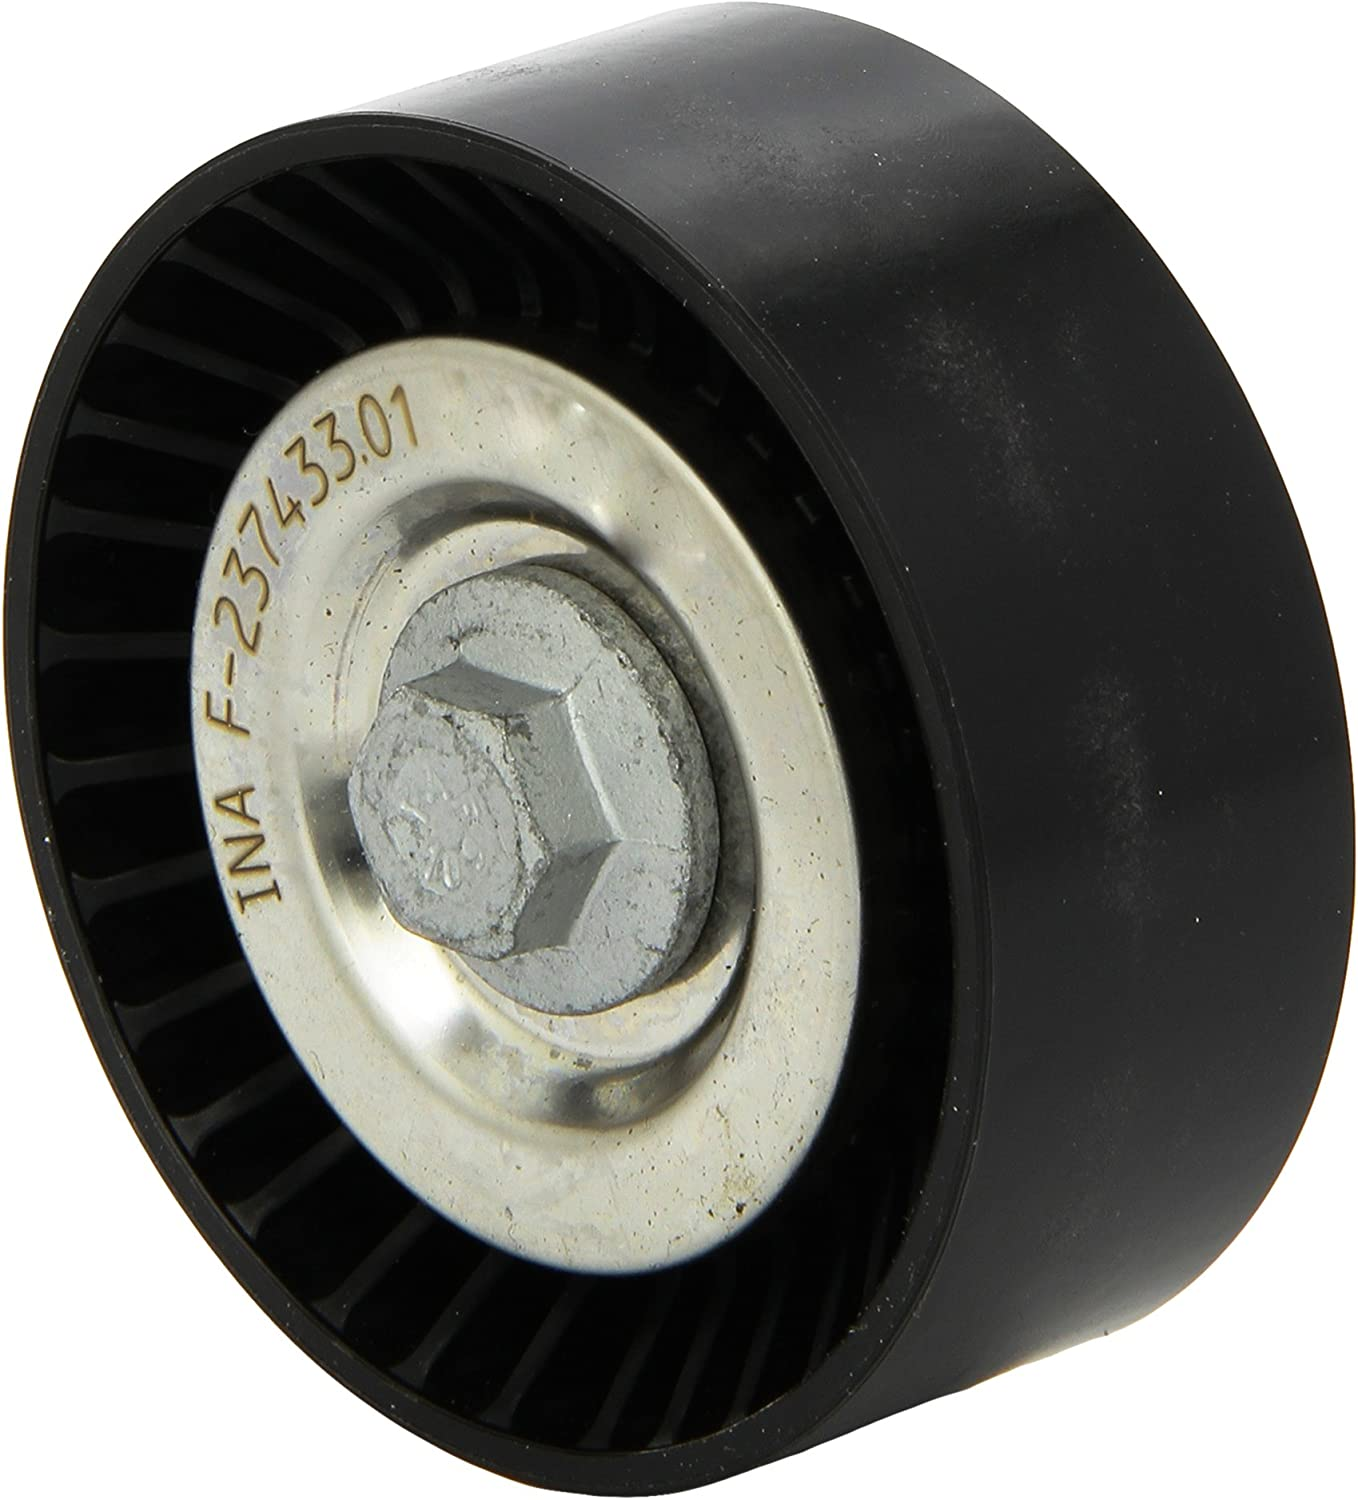 INA 532 0501 10 LUK 532050110 Guide Pulley for V-Ribbed Belt